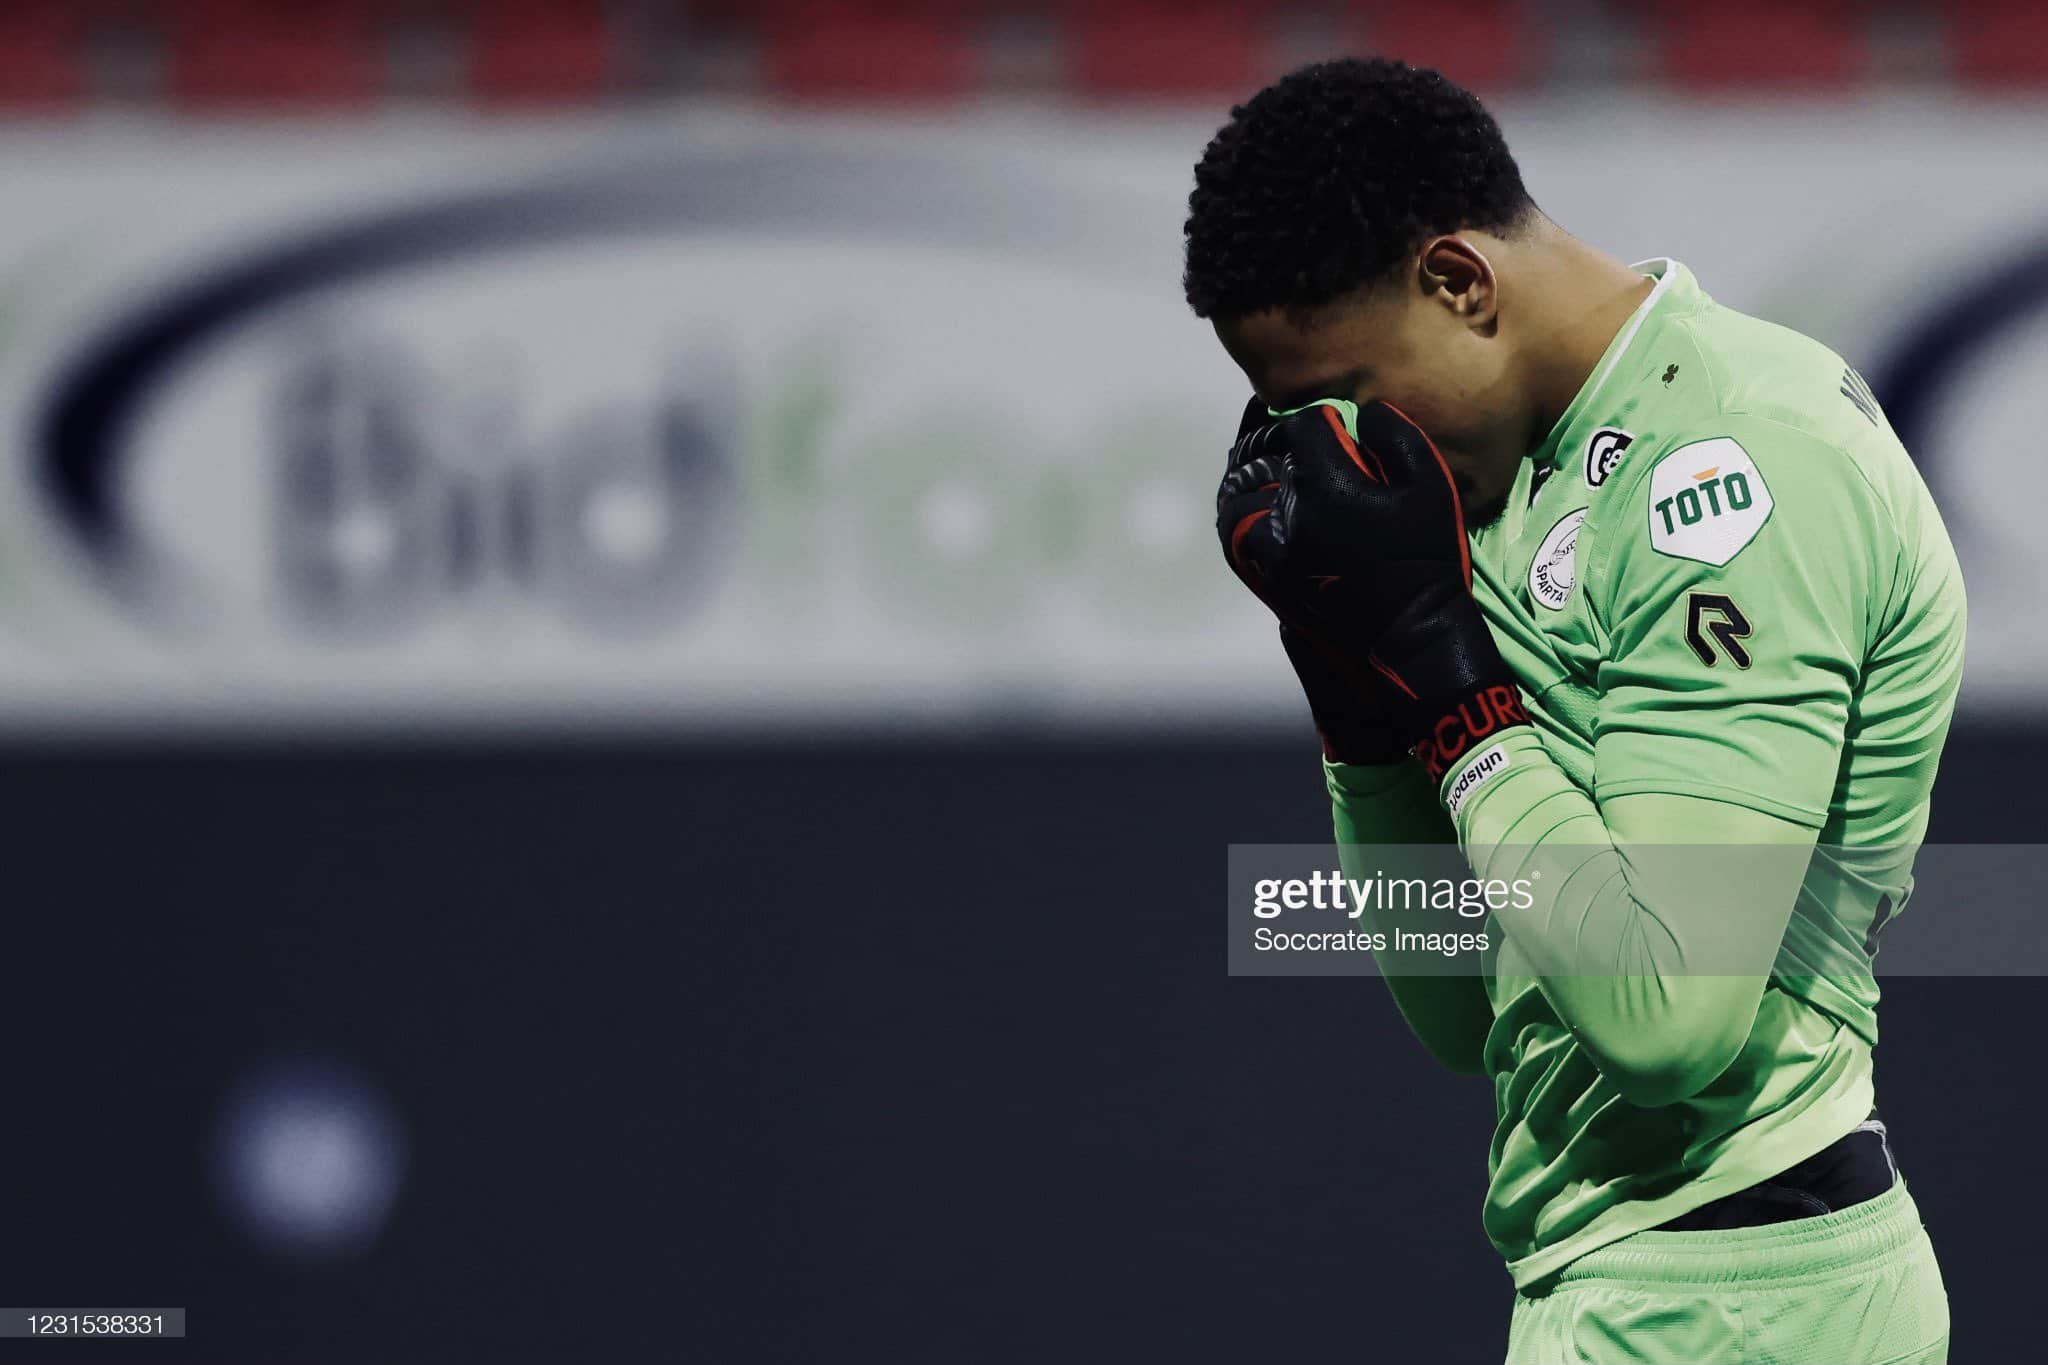 Eredivisie: Okoye Concedes In 7th Consecutive Games As Sparta Rotterdam Lose 4-0 At Home